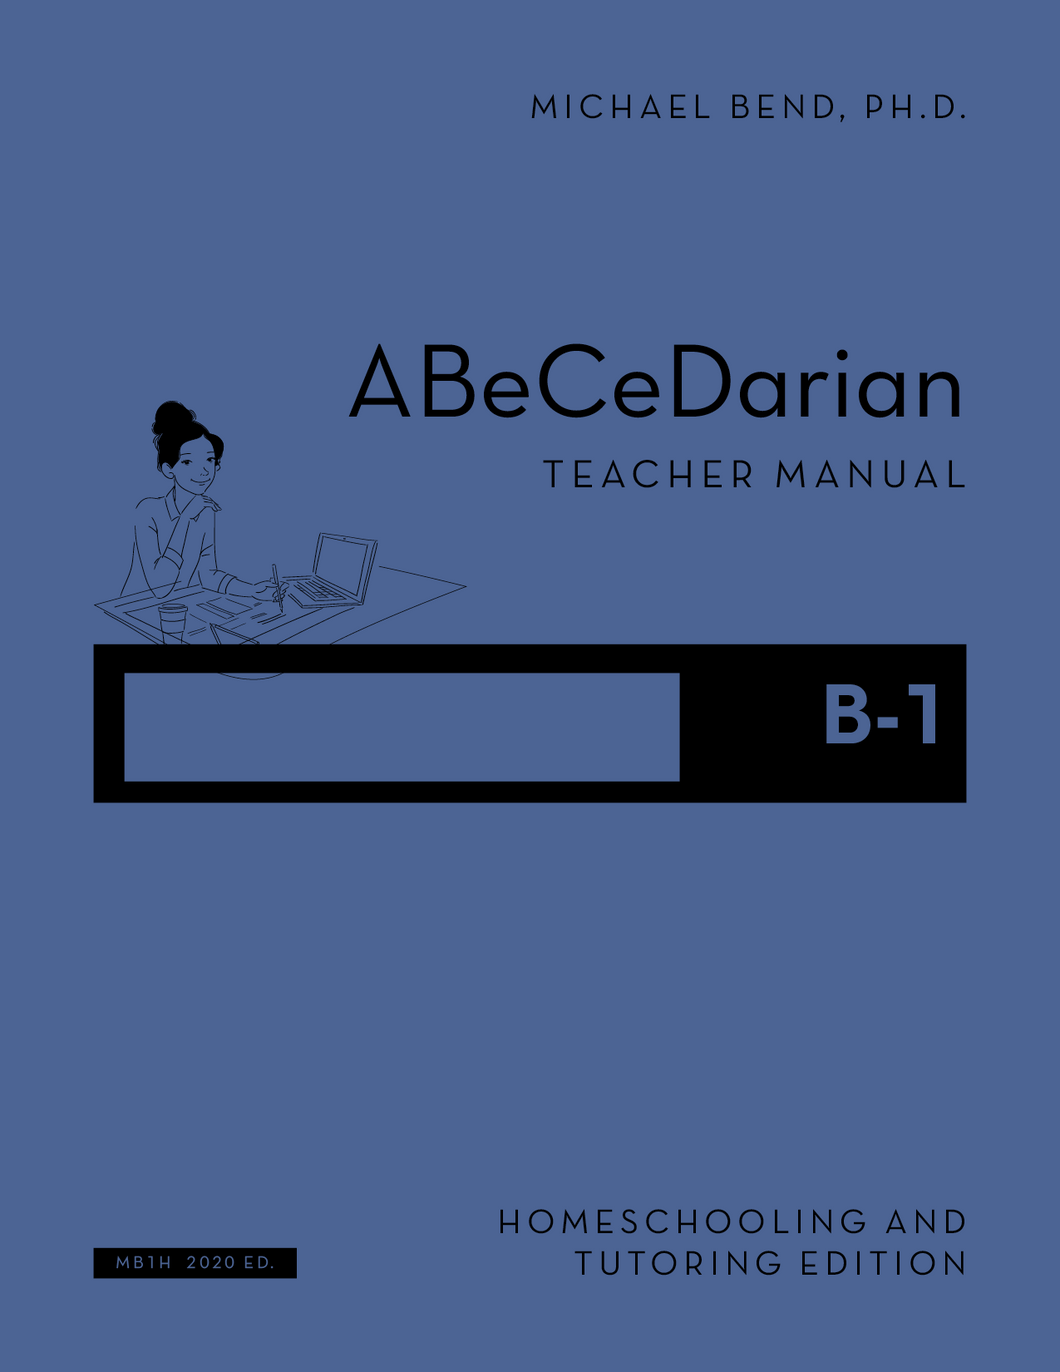 Teacher Manual B1